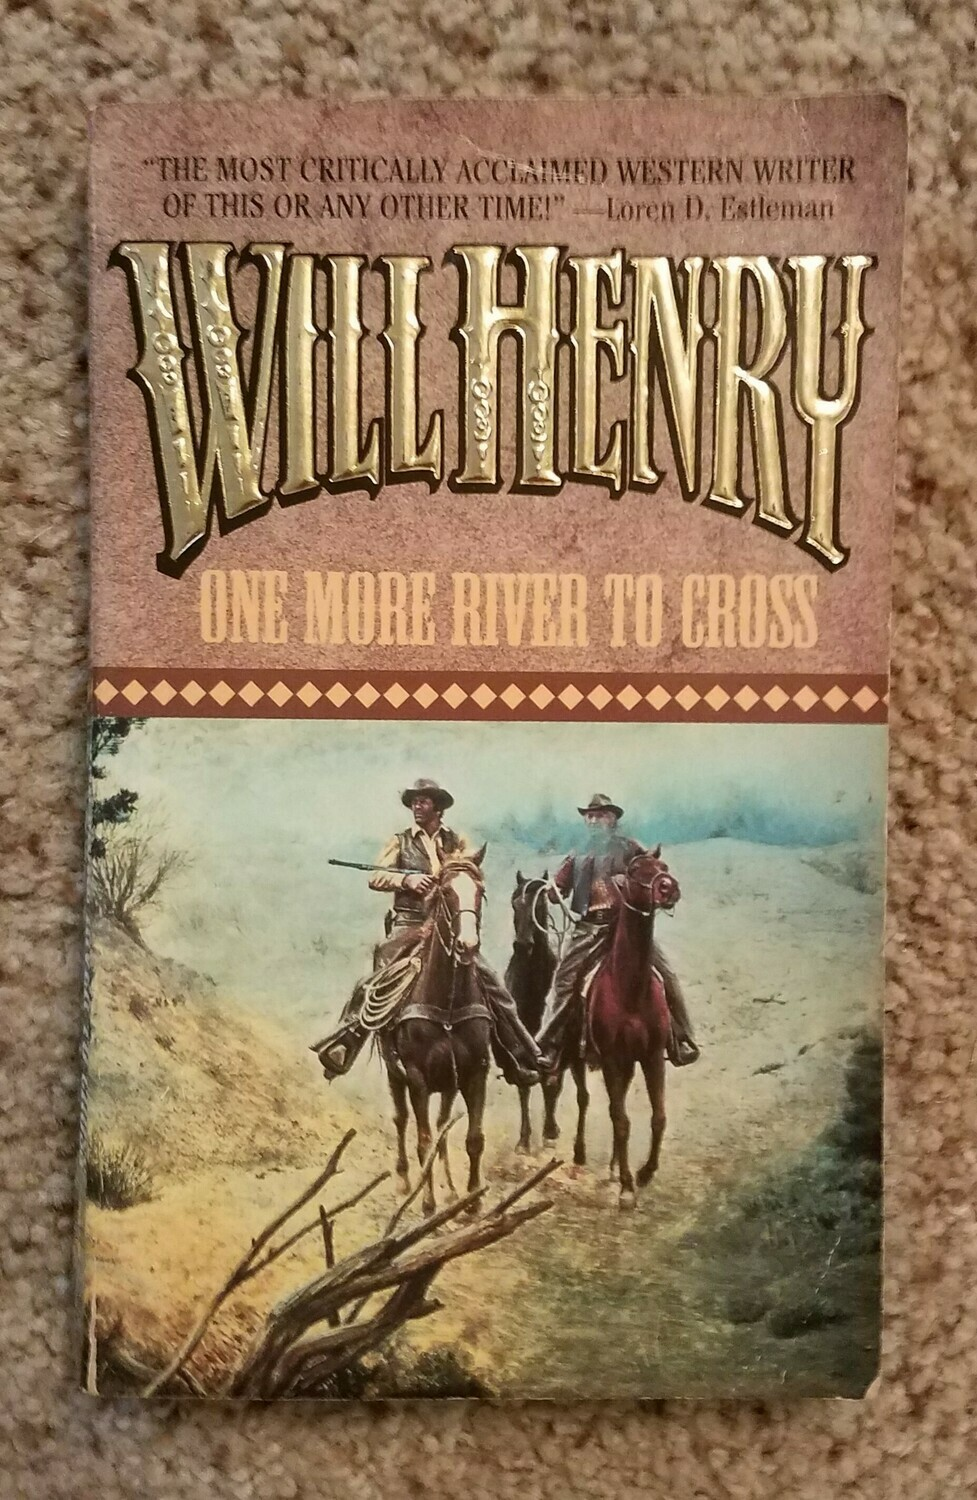 One More River to Cross by Will Henry